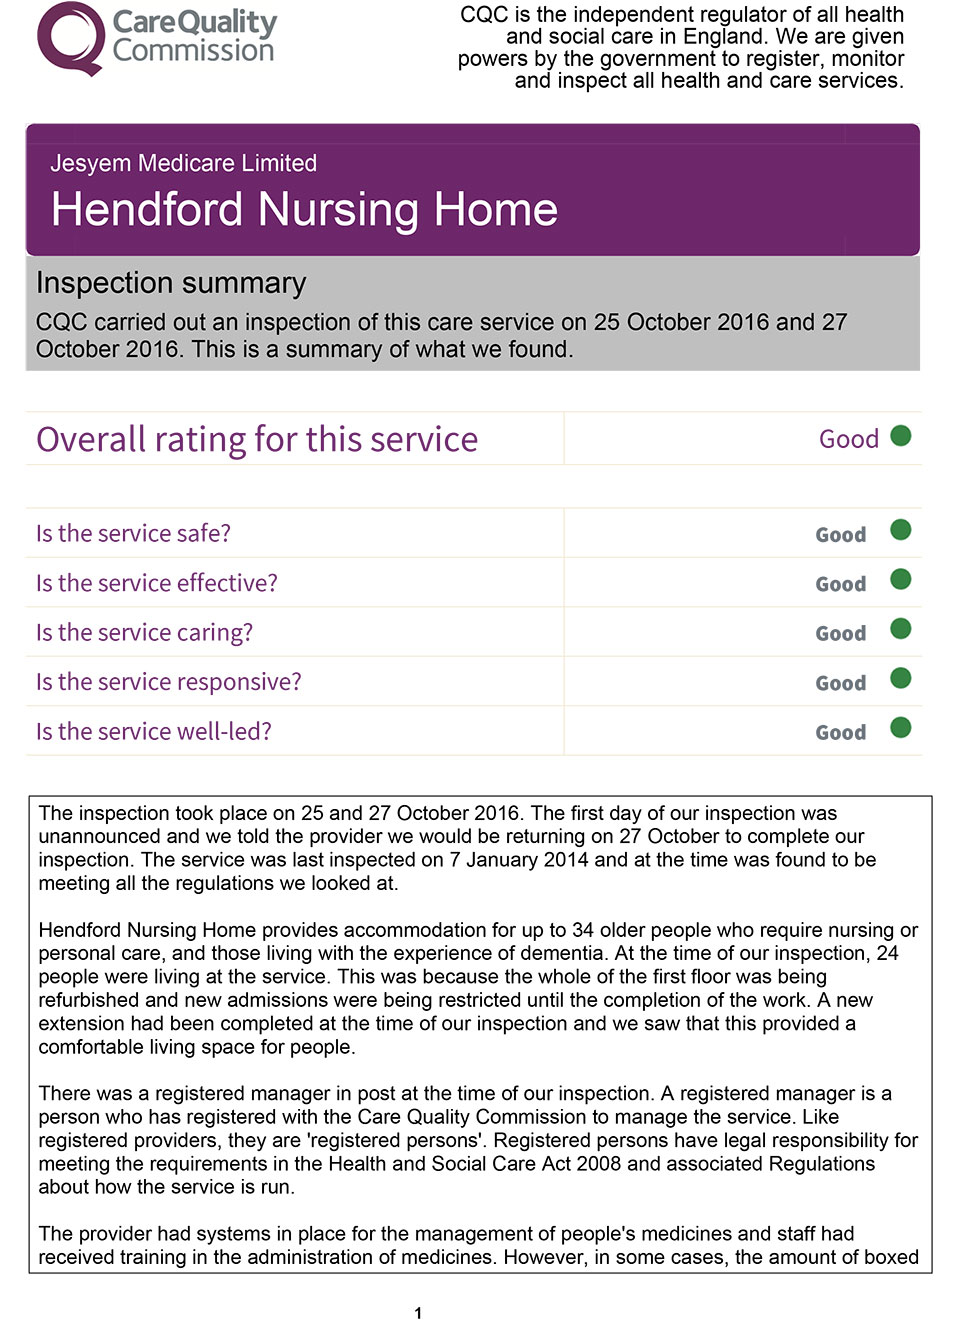 Hendford Nursing Home - Care Quality Commission Inspection Report Summary